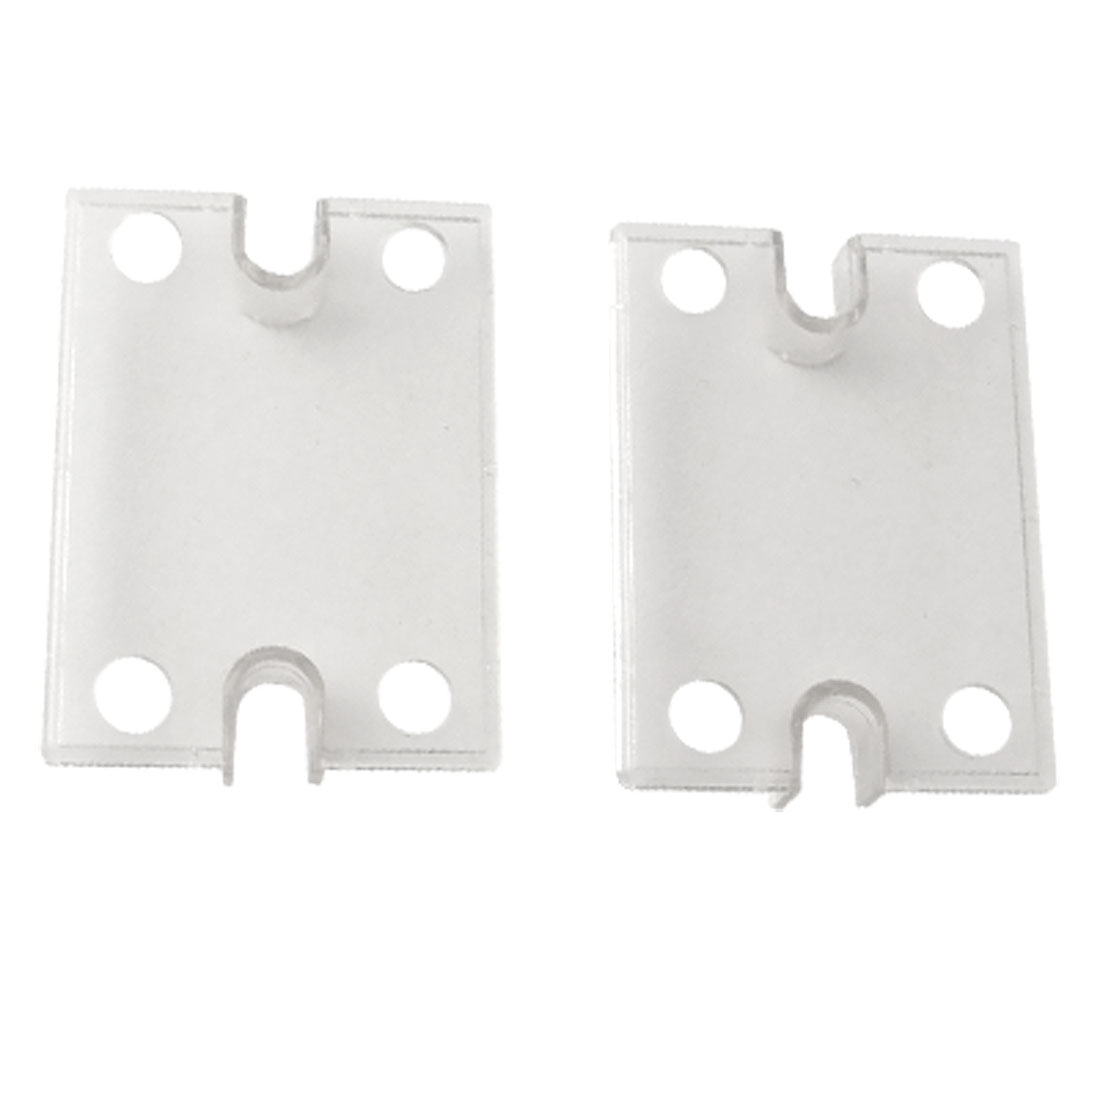 Single Phase Solid State Relay SSR Clear Plastic Safety Cover 2 Pcs